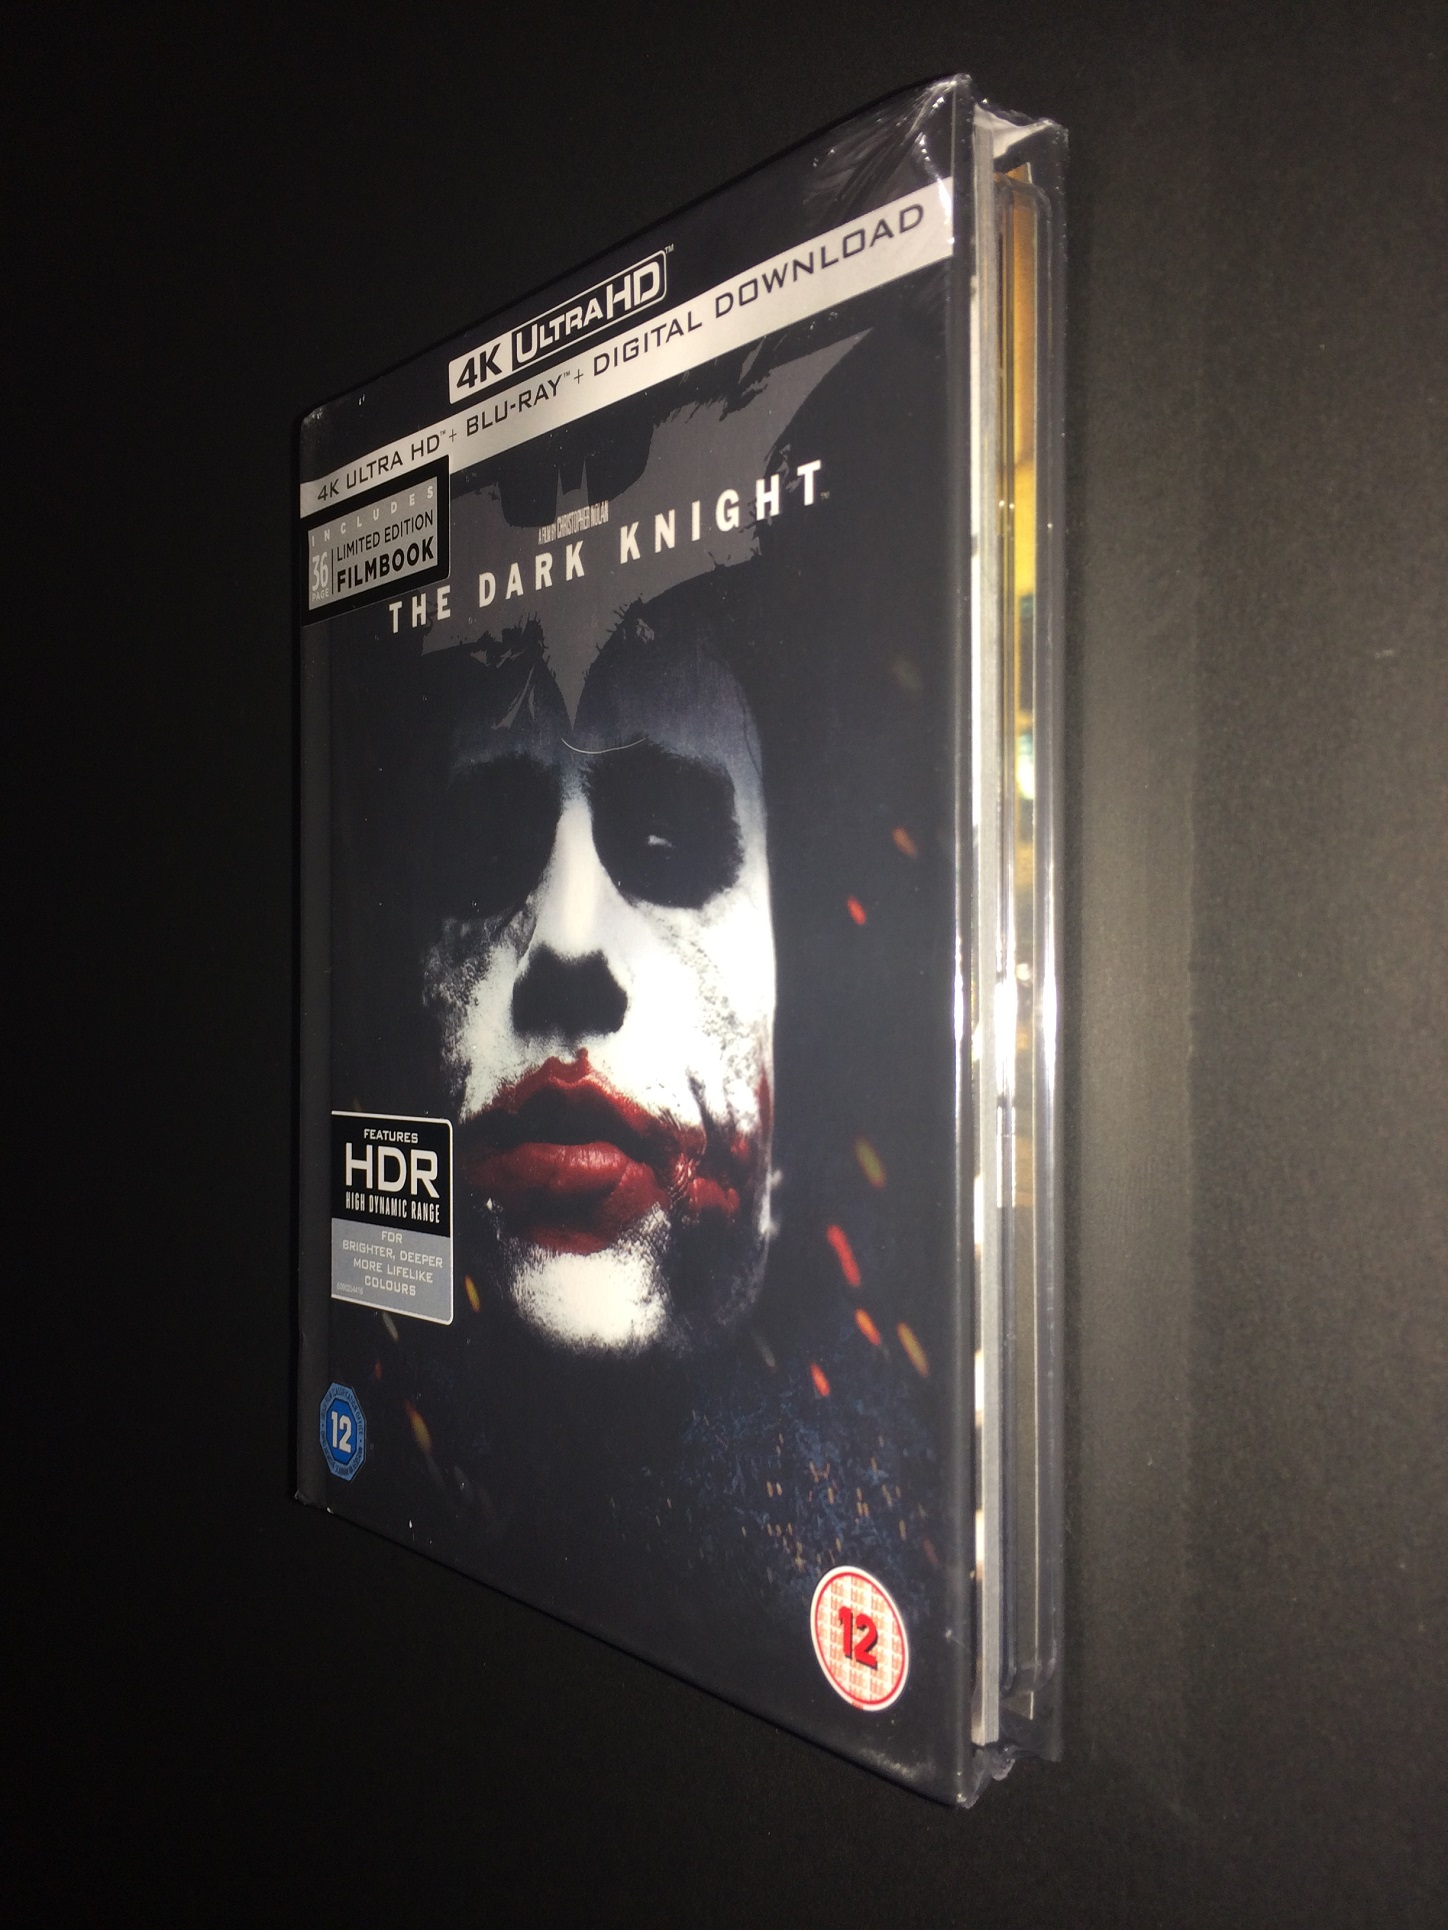 Download The Dark Knight 4K Images Gif